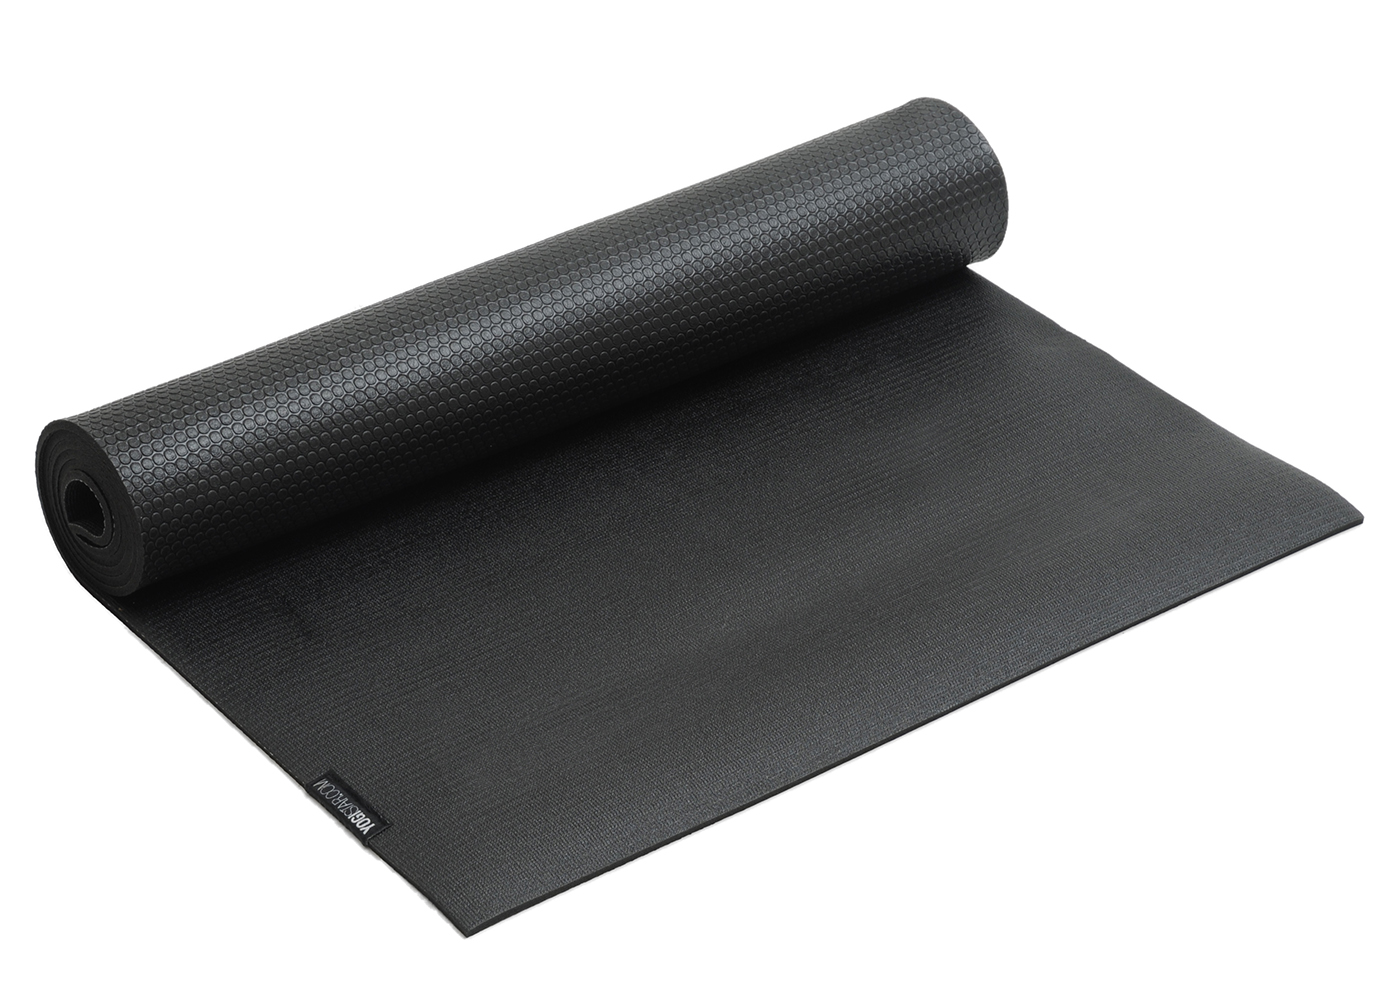 Yoga mat 'Stira Deluxe', black buy online at YOGISTAR.COM ...